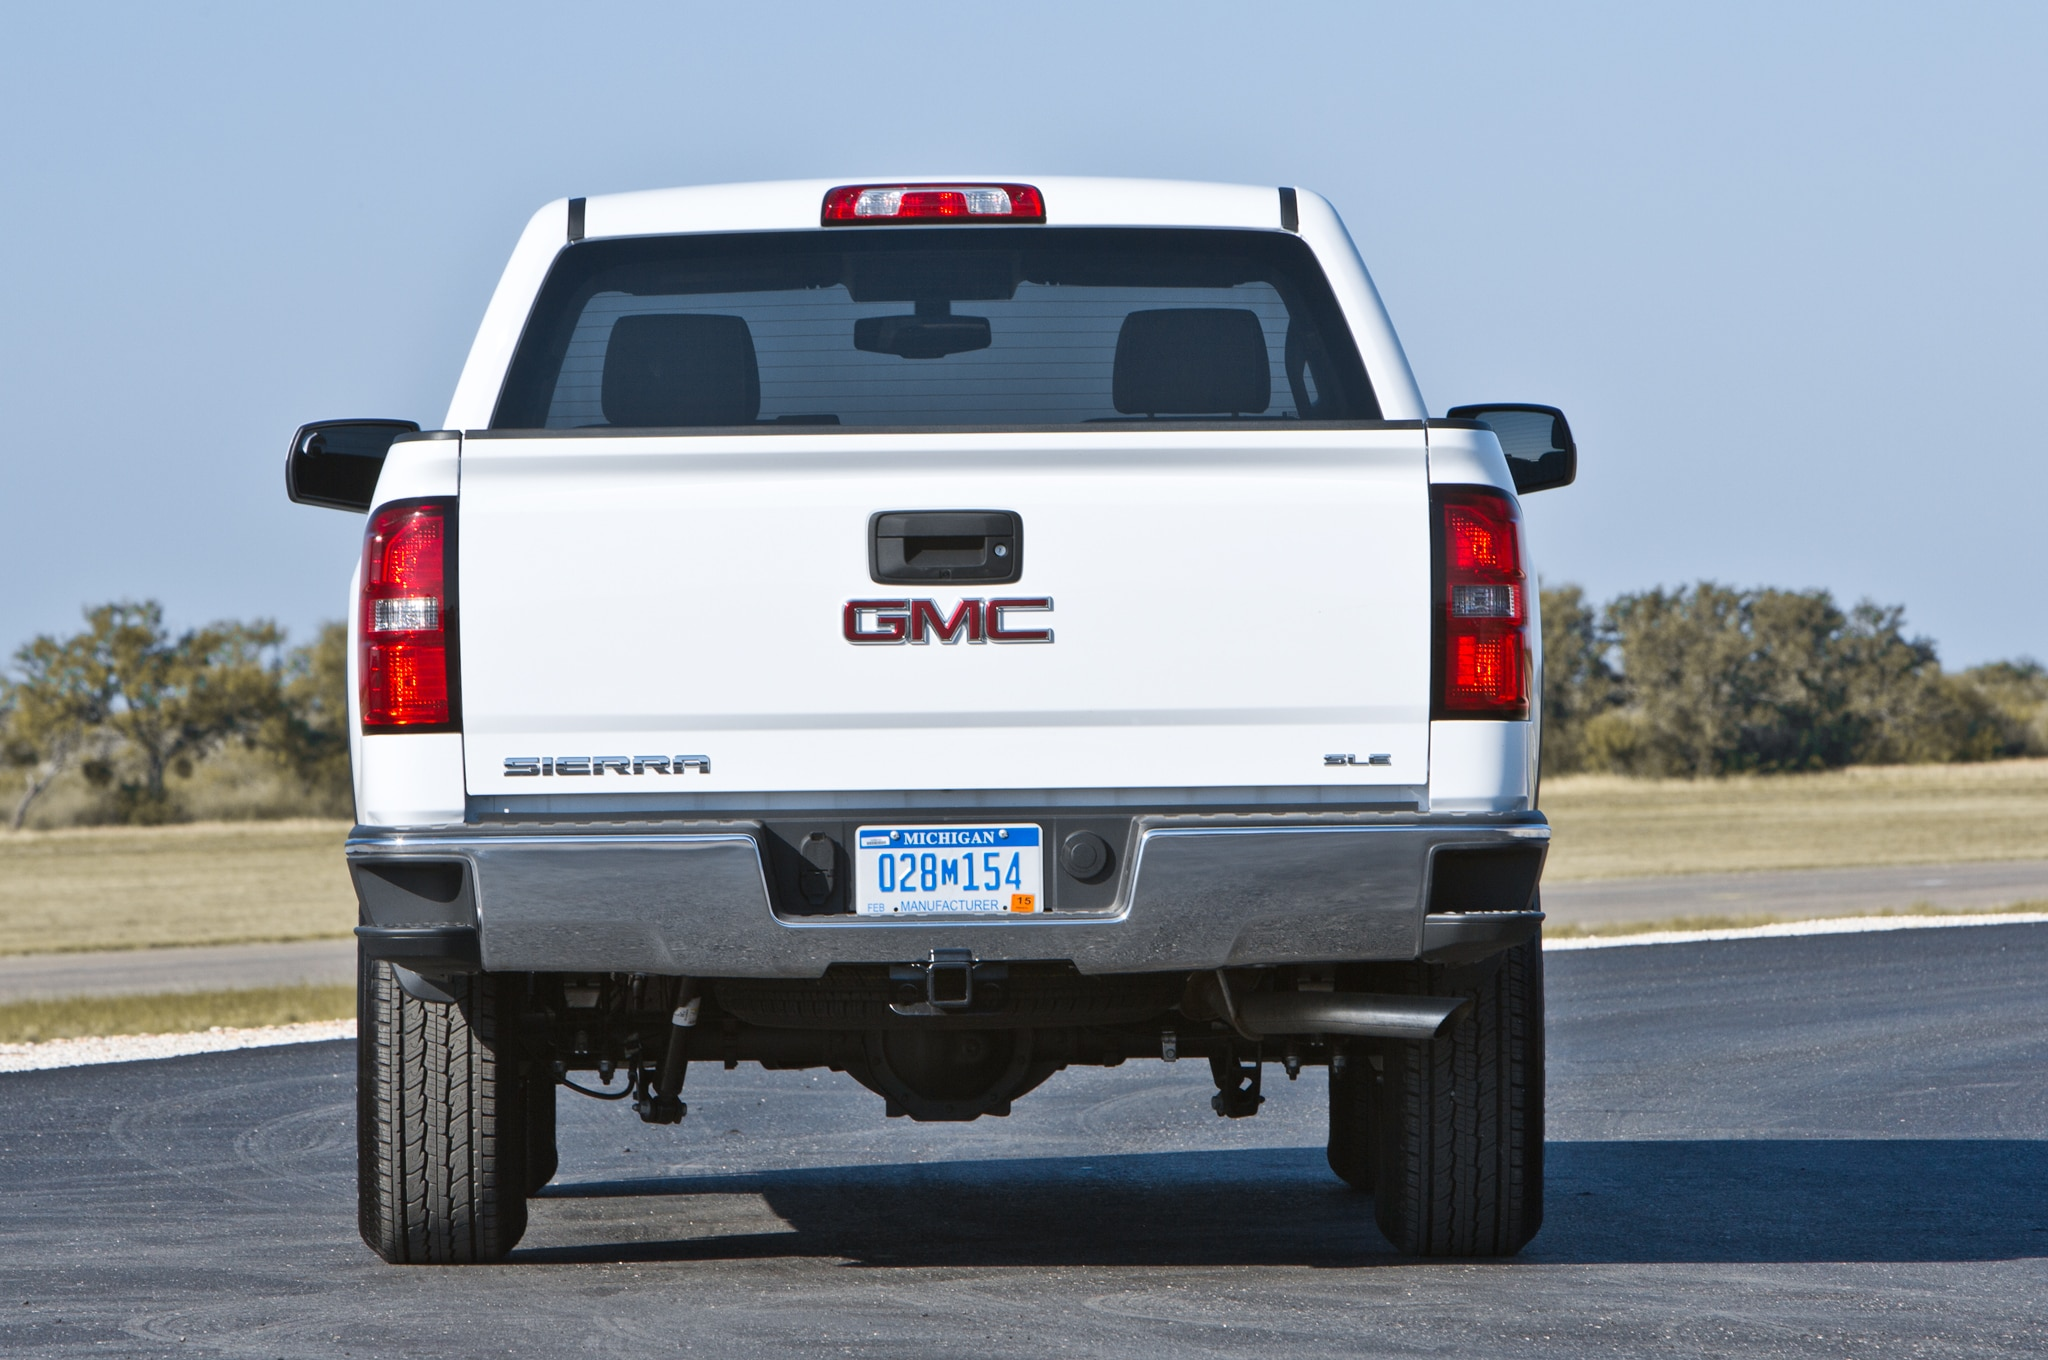 2014 GMC Sierra SLE Regular Cab rear profile